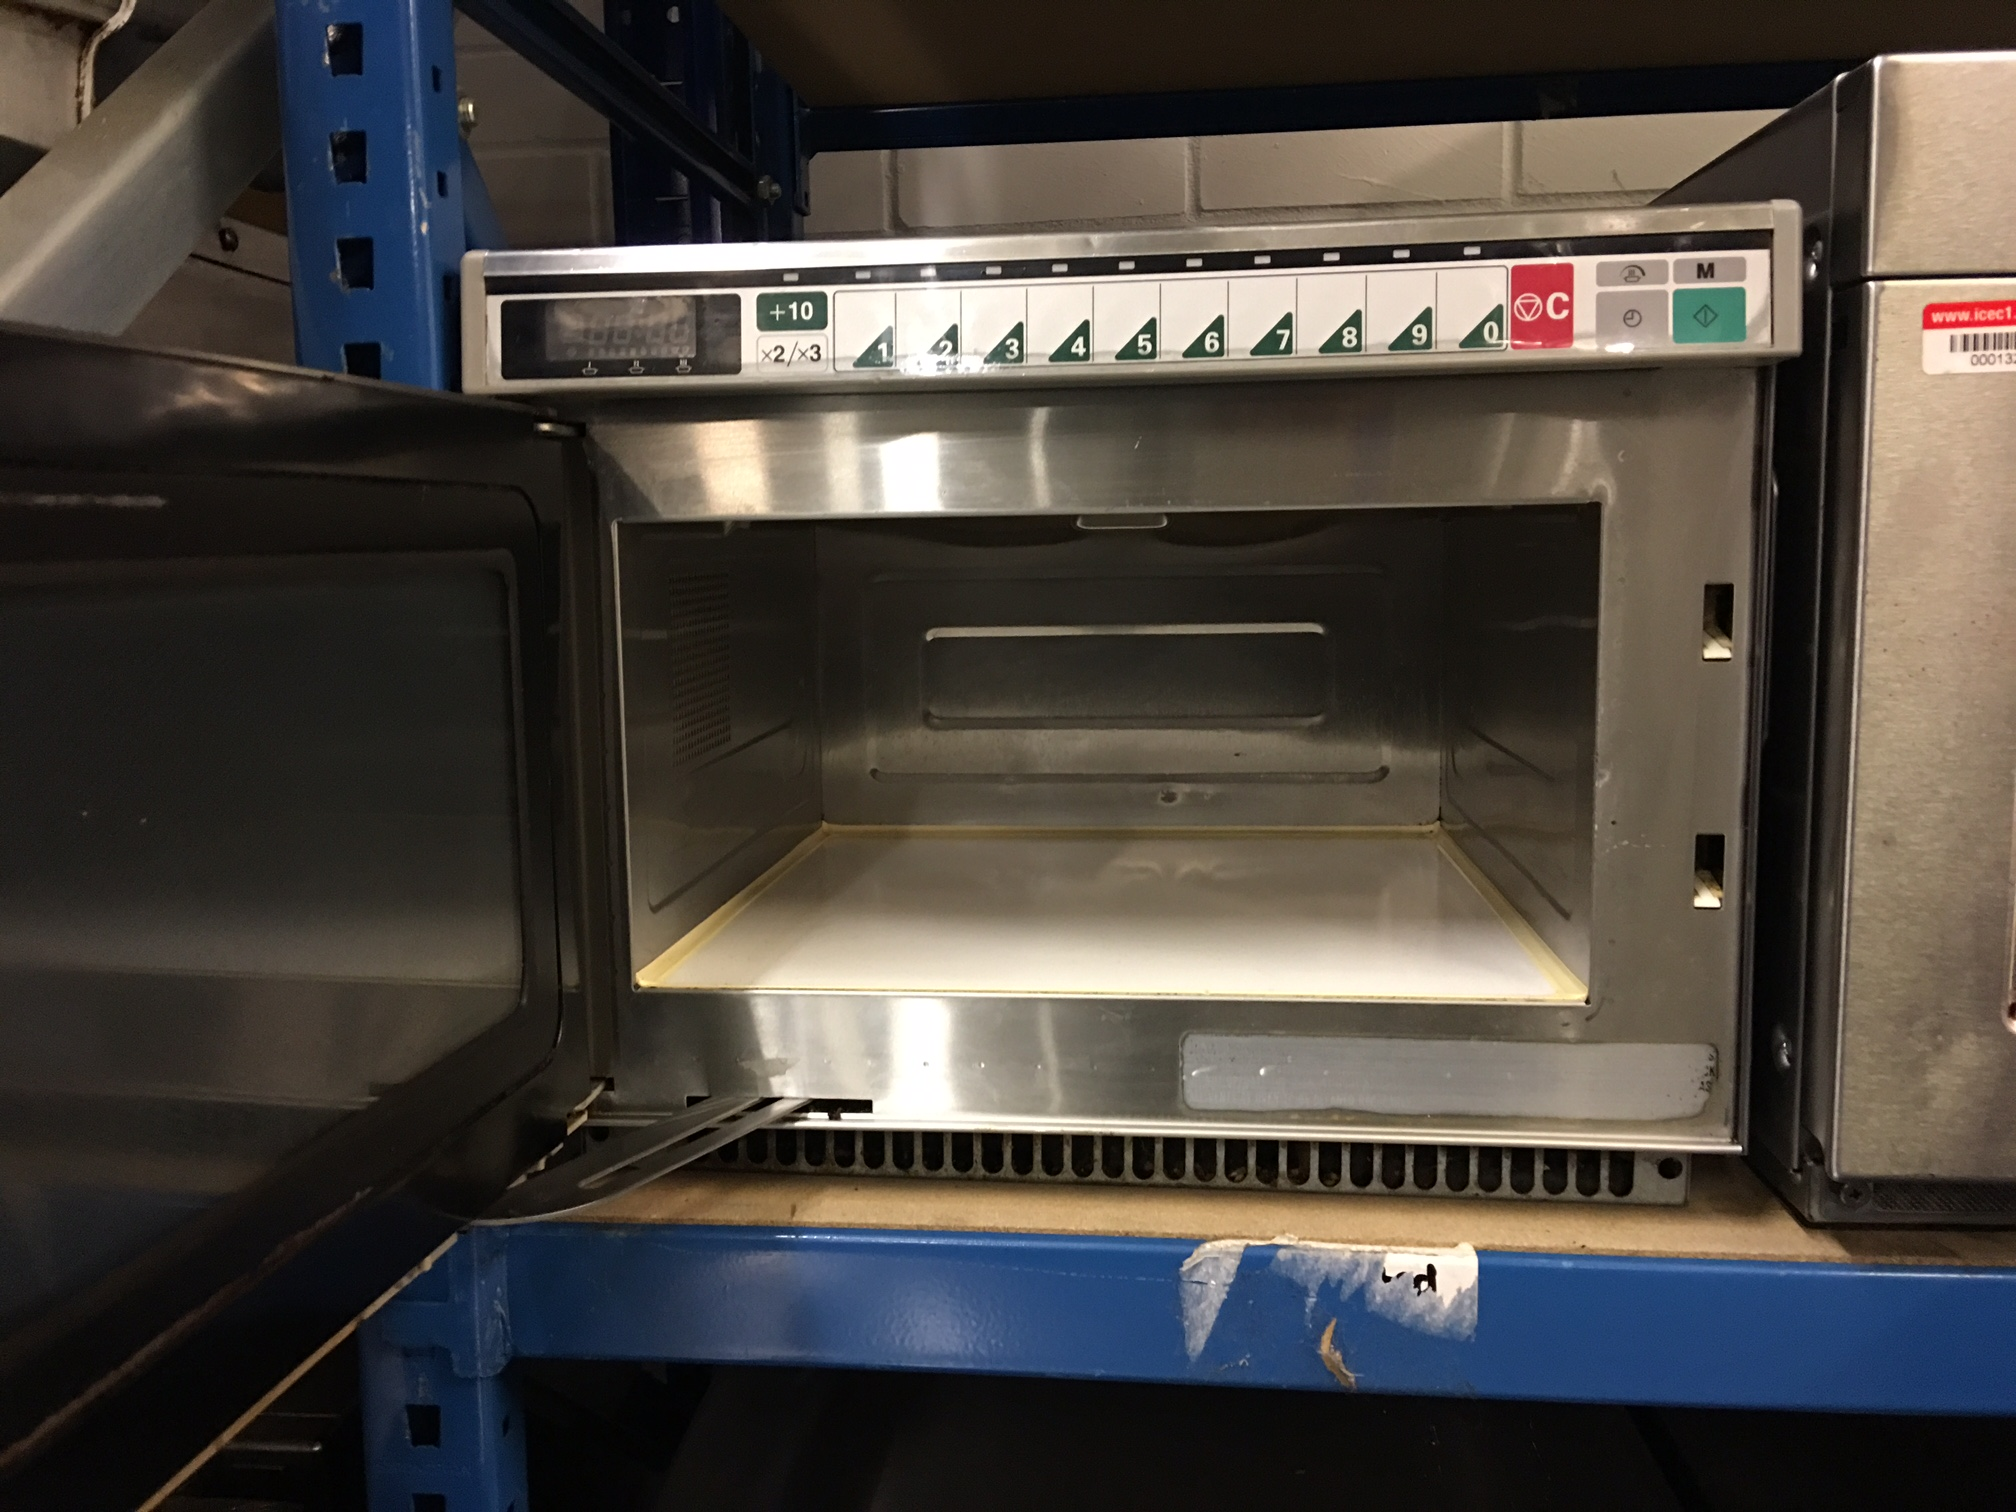 Sanyo Emc1901 Commercial Microwave 1900w Used Rational